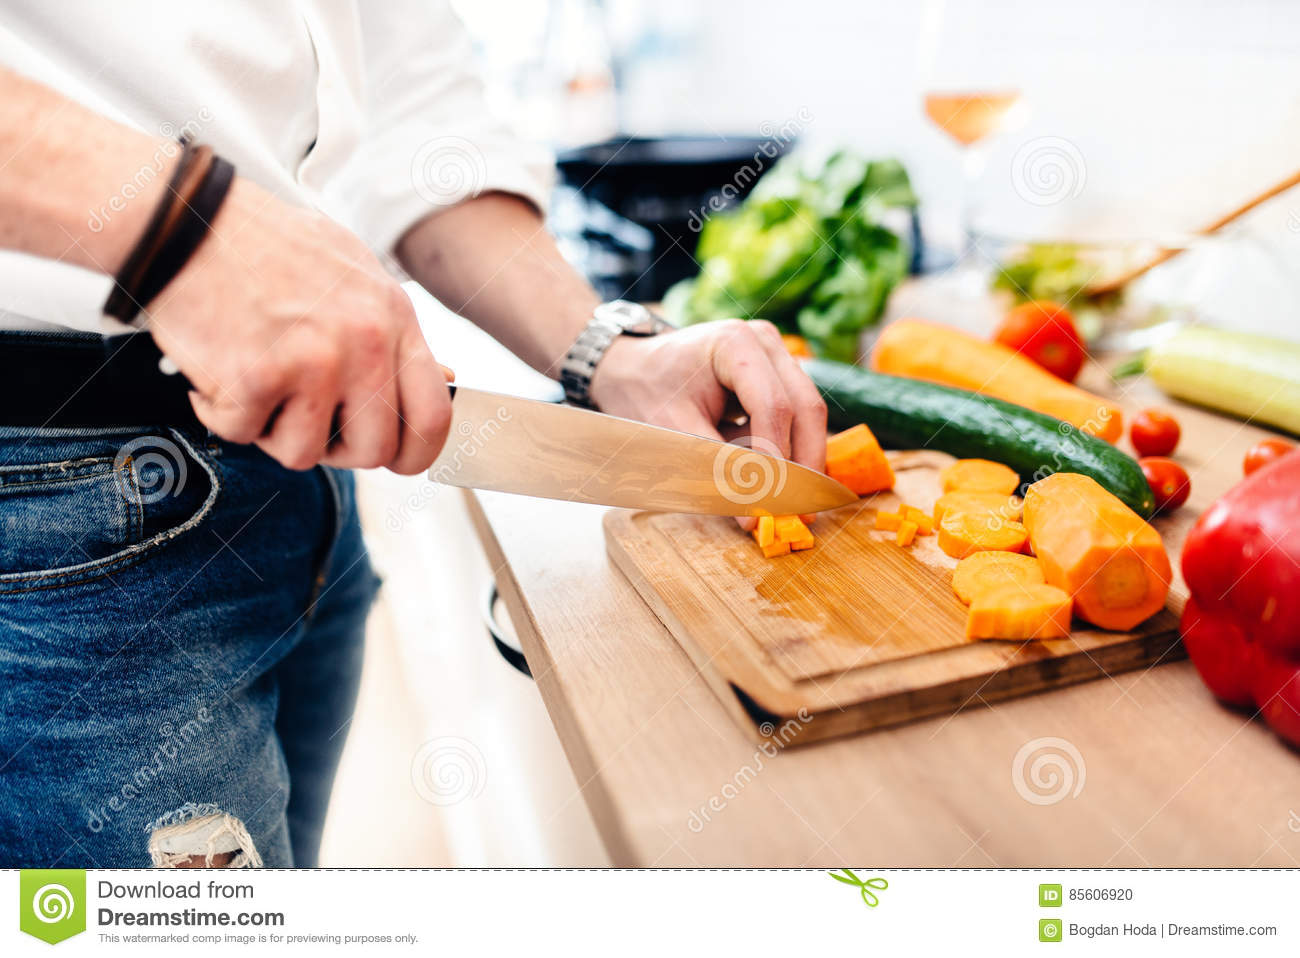 Best Kitchen Knife For Cutting Vegetables